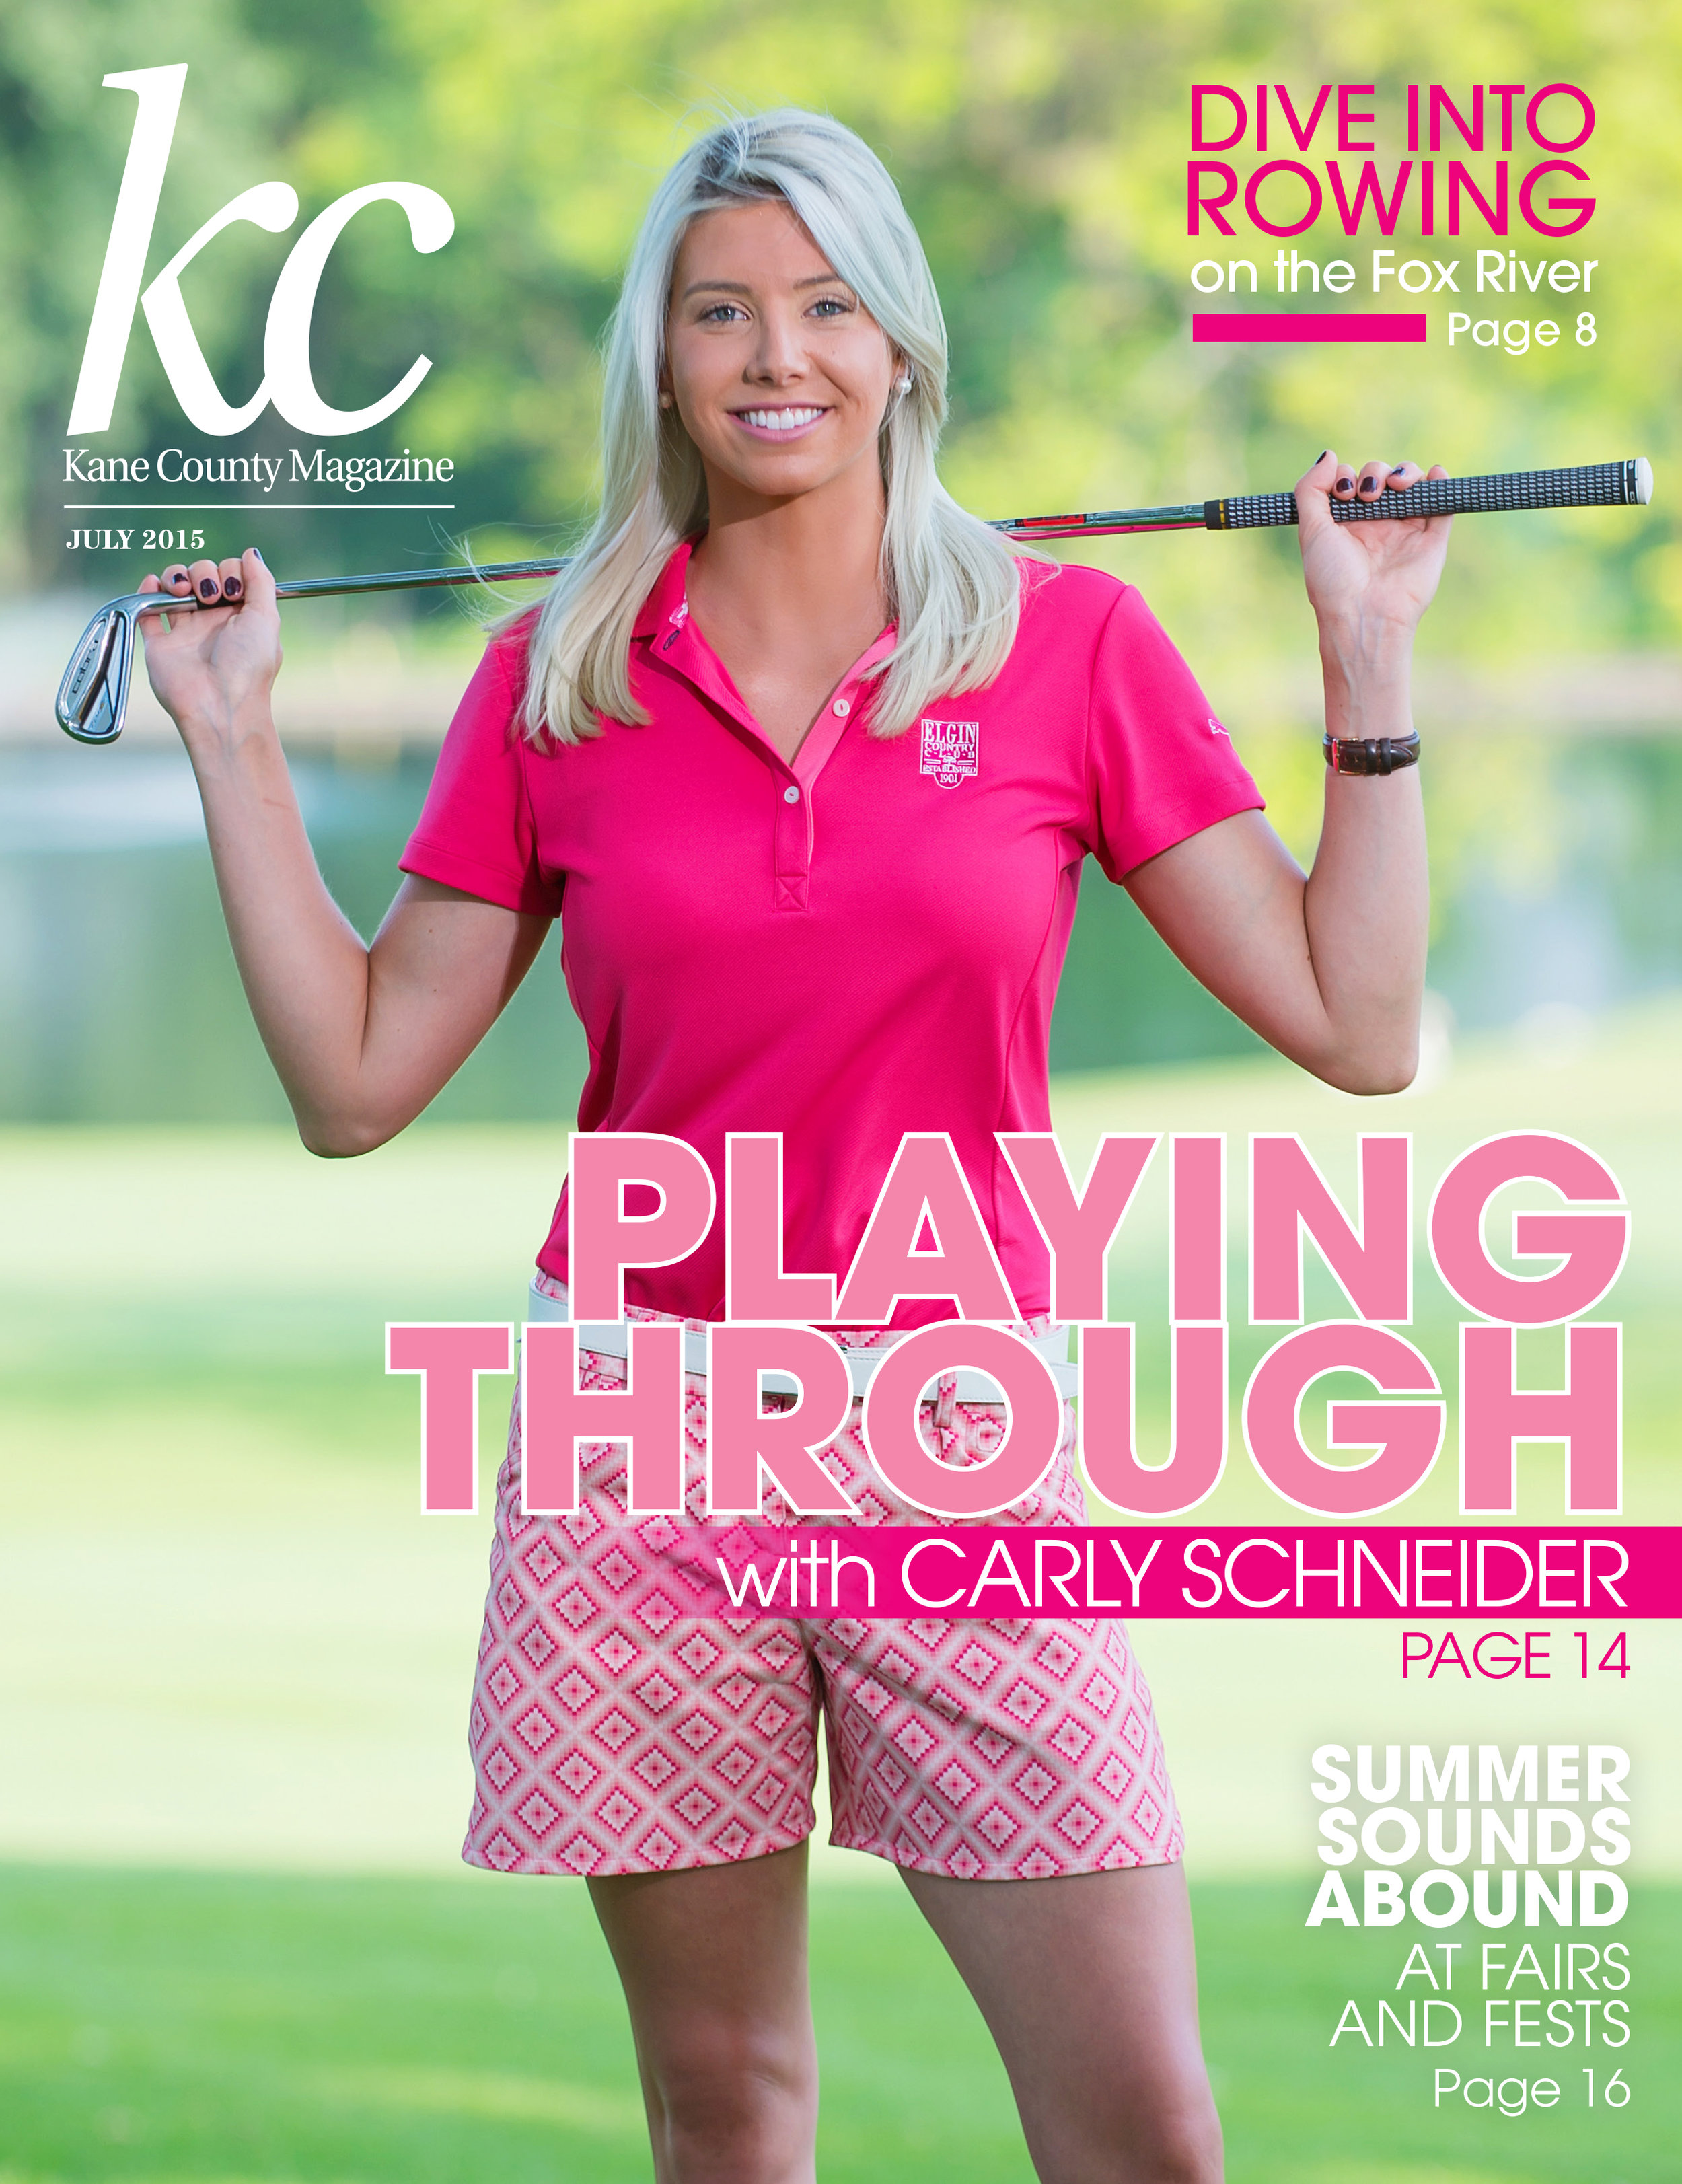 7 KC_JULY 2015 carly golf.jpg